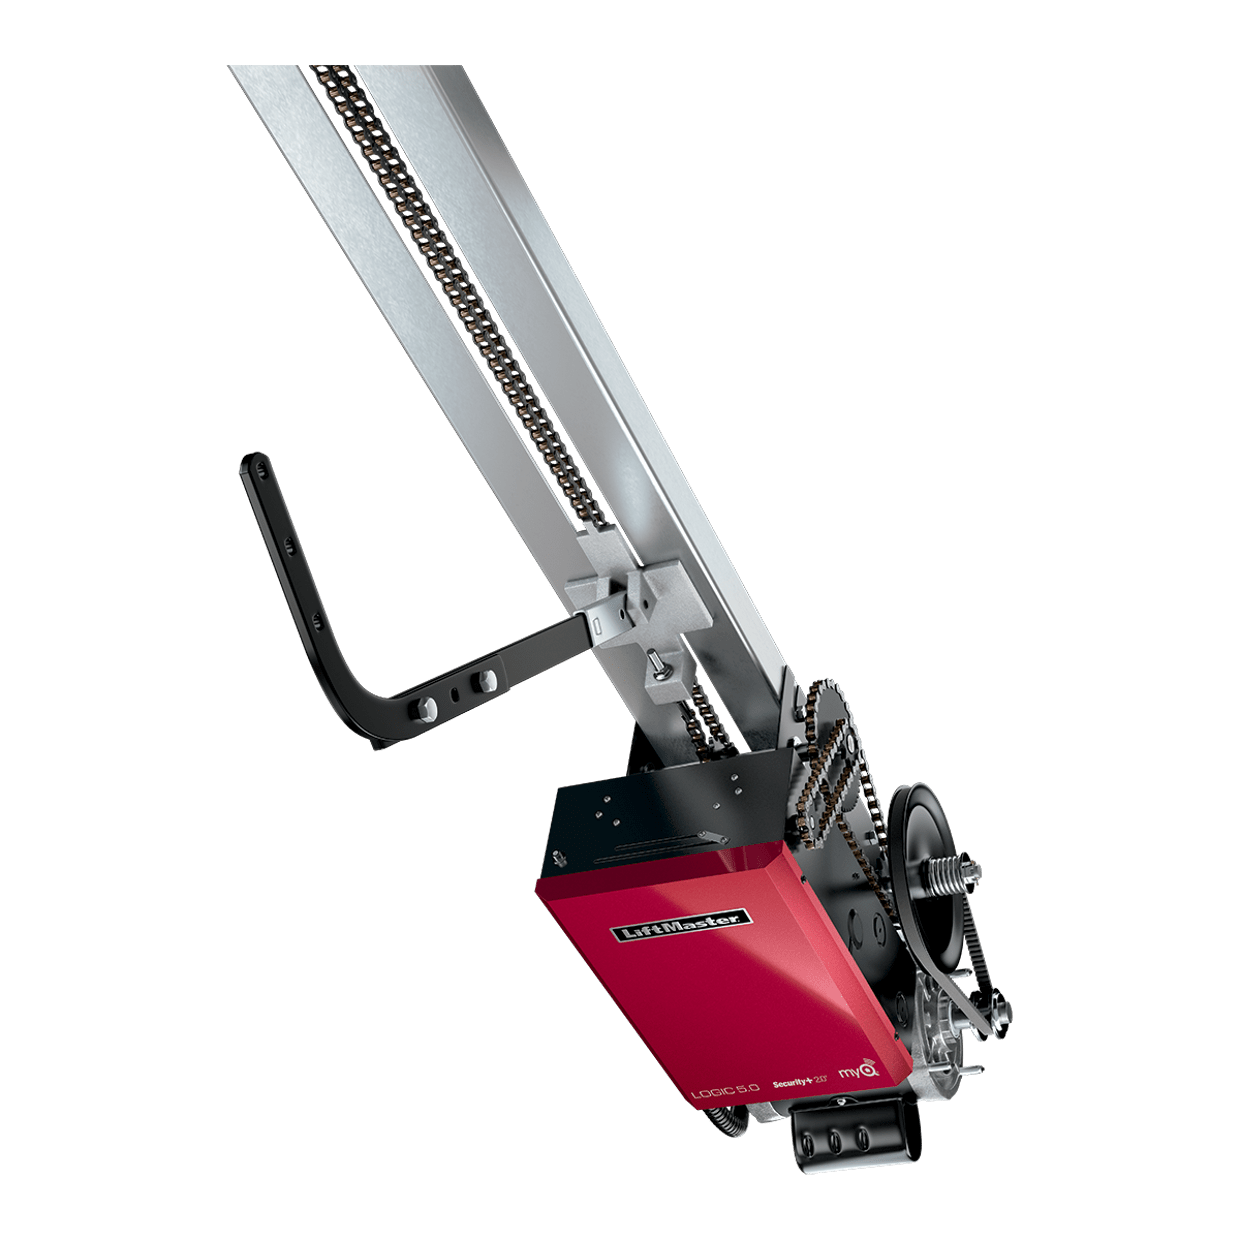 LiftMaster Industrial-Duty Series